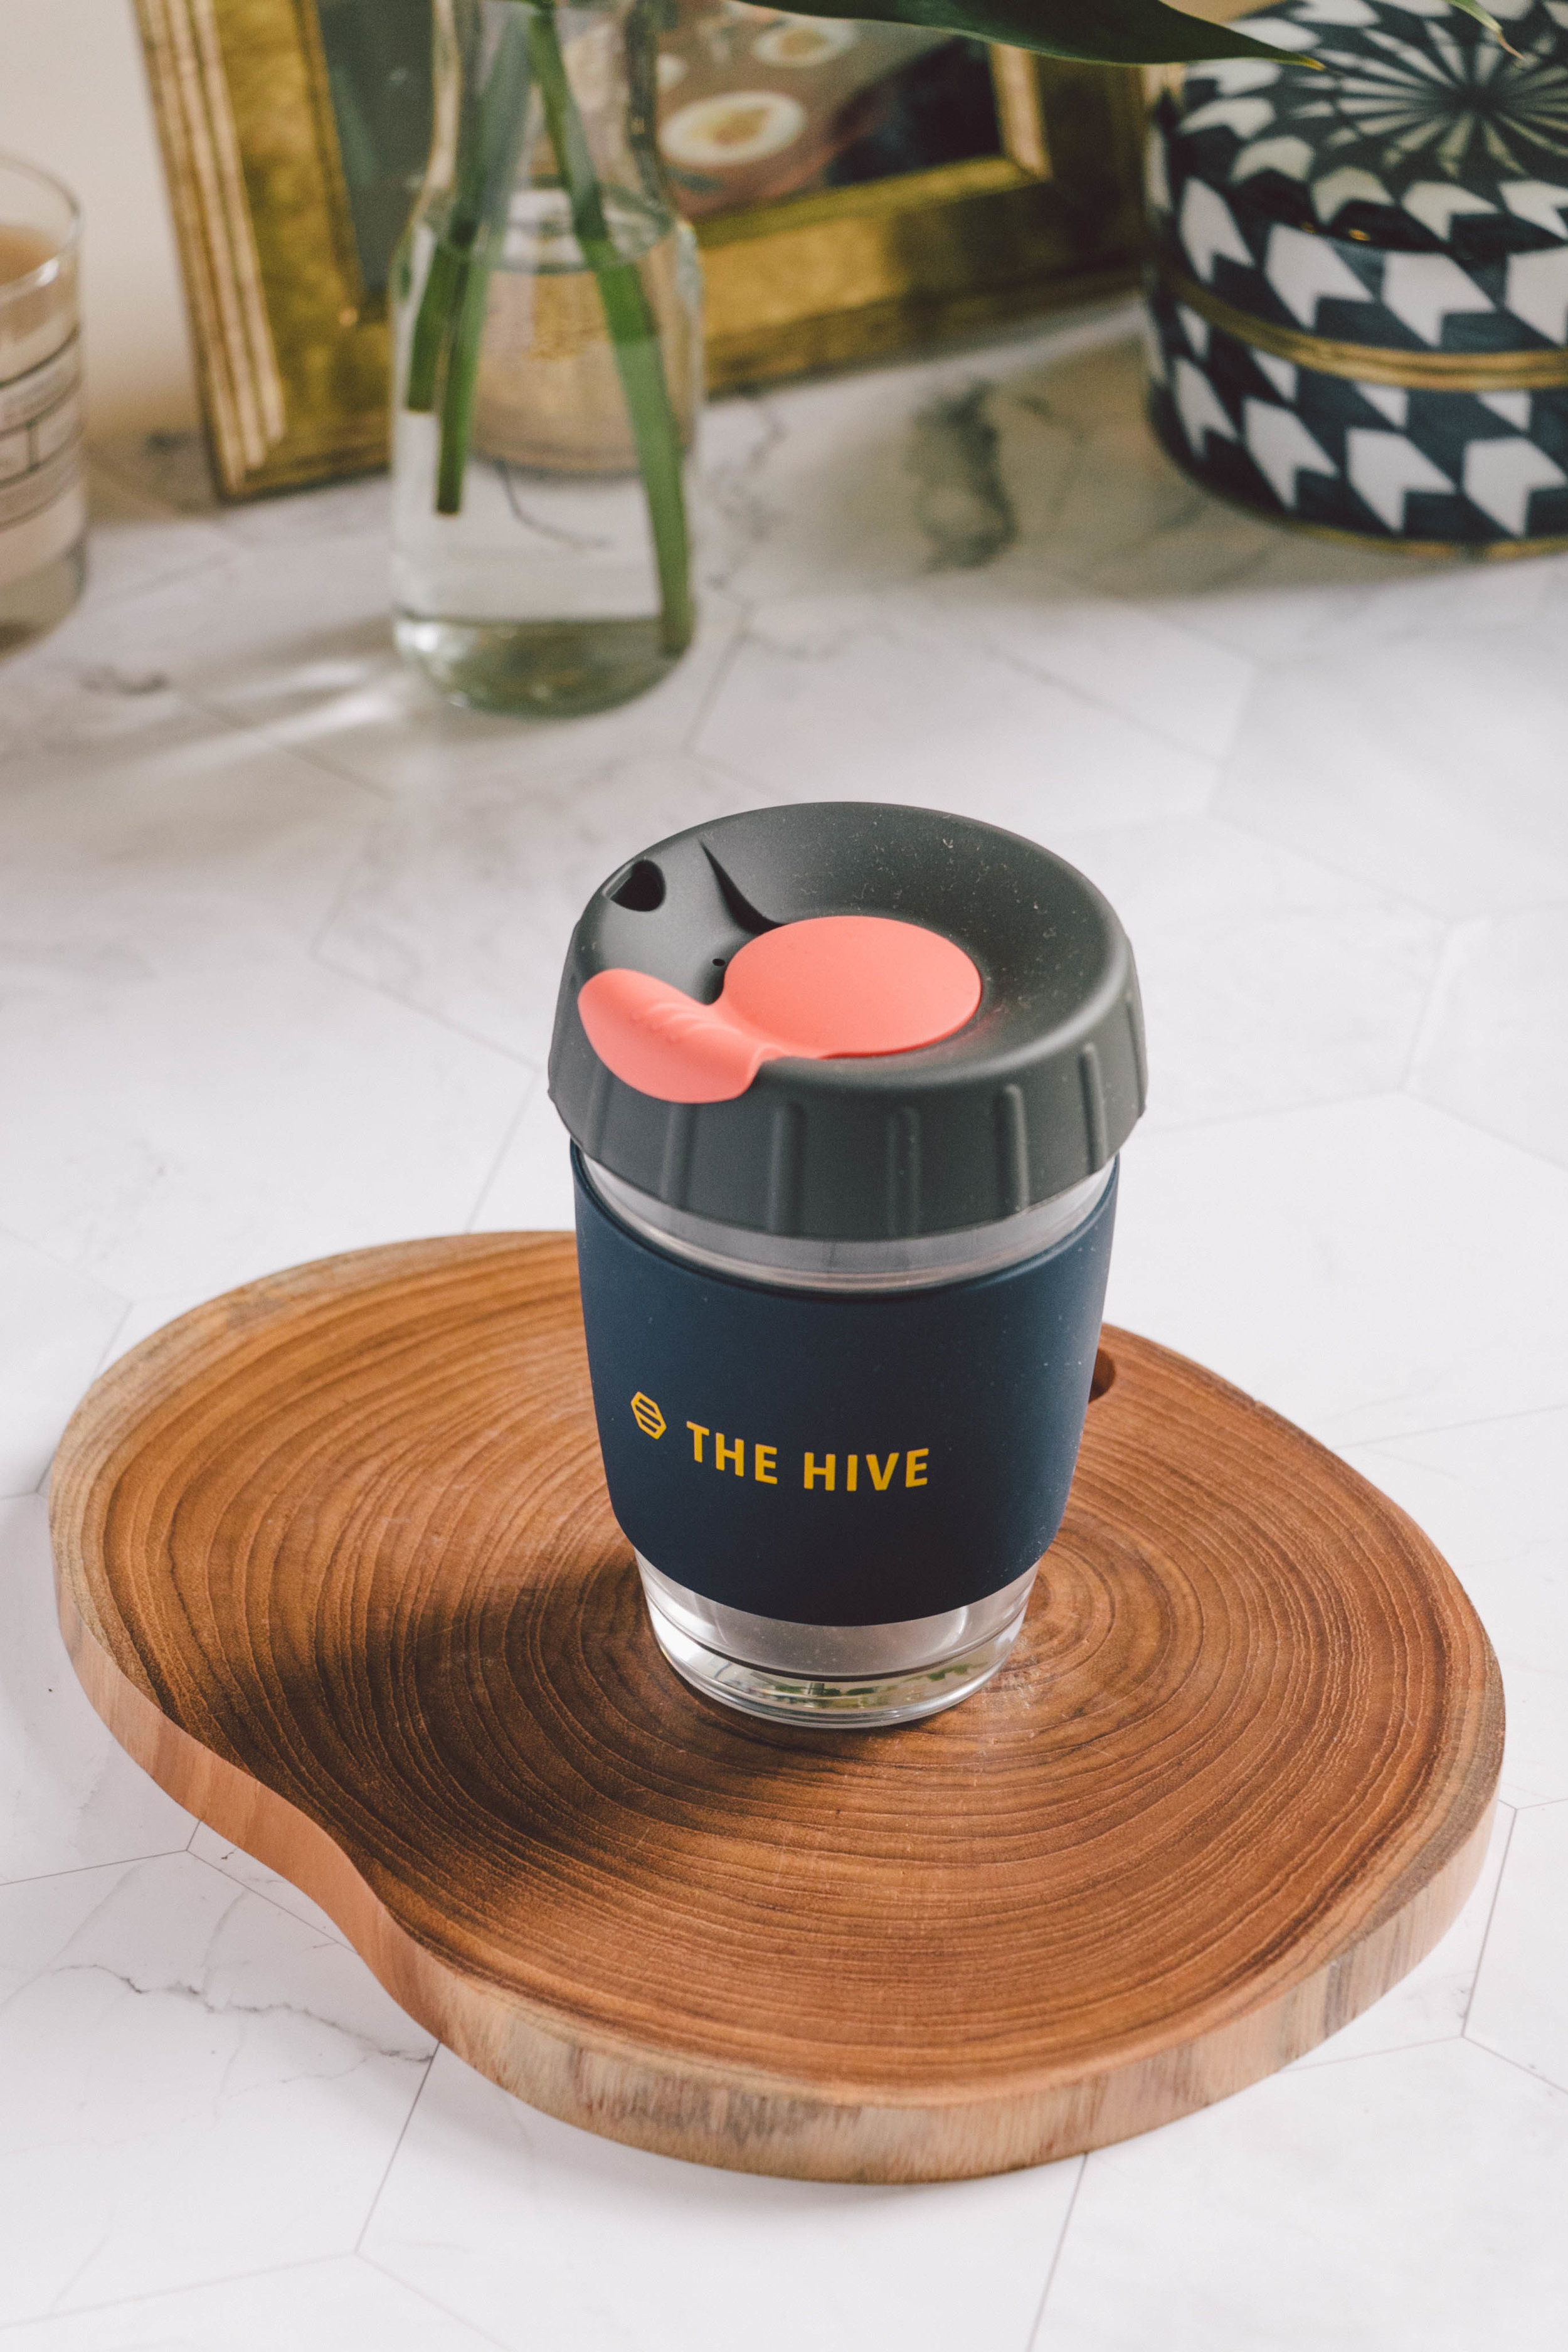 The Hive Glass Cup Tumbler - You all know I'm not a coffee drinker, but I do love a good alternative latte—matcha, beetroot, turmeric and cacao are my favourites! While it may be easier to takeaway your drink in a disposable cup, having your own that you can reuse every time is a much more sustainable option that will help reduce waste and single-use plastics.I love the quality and design of The Hive Glass Cup Tumbler. The glass is thick and feels so durable while the silicone lid makes it easy to drink from while preventing any spills.